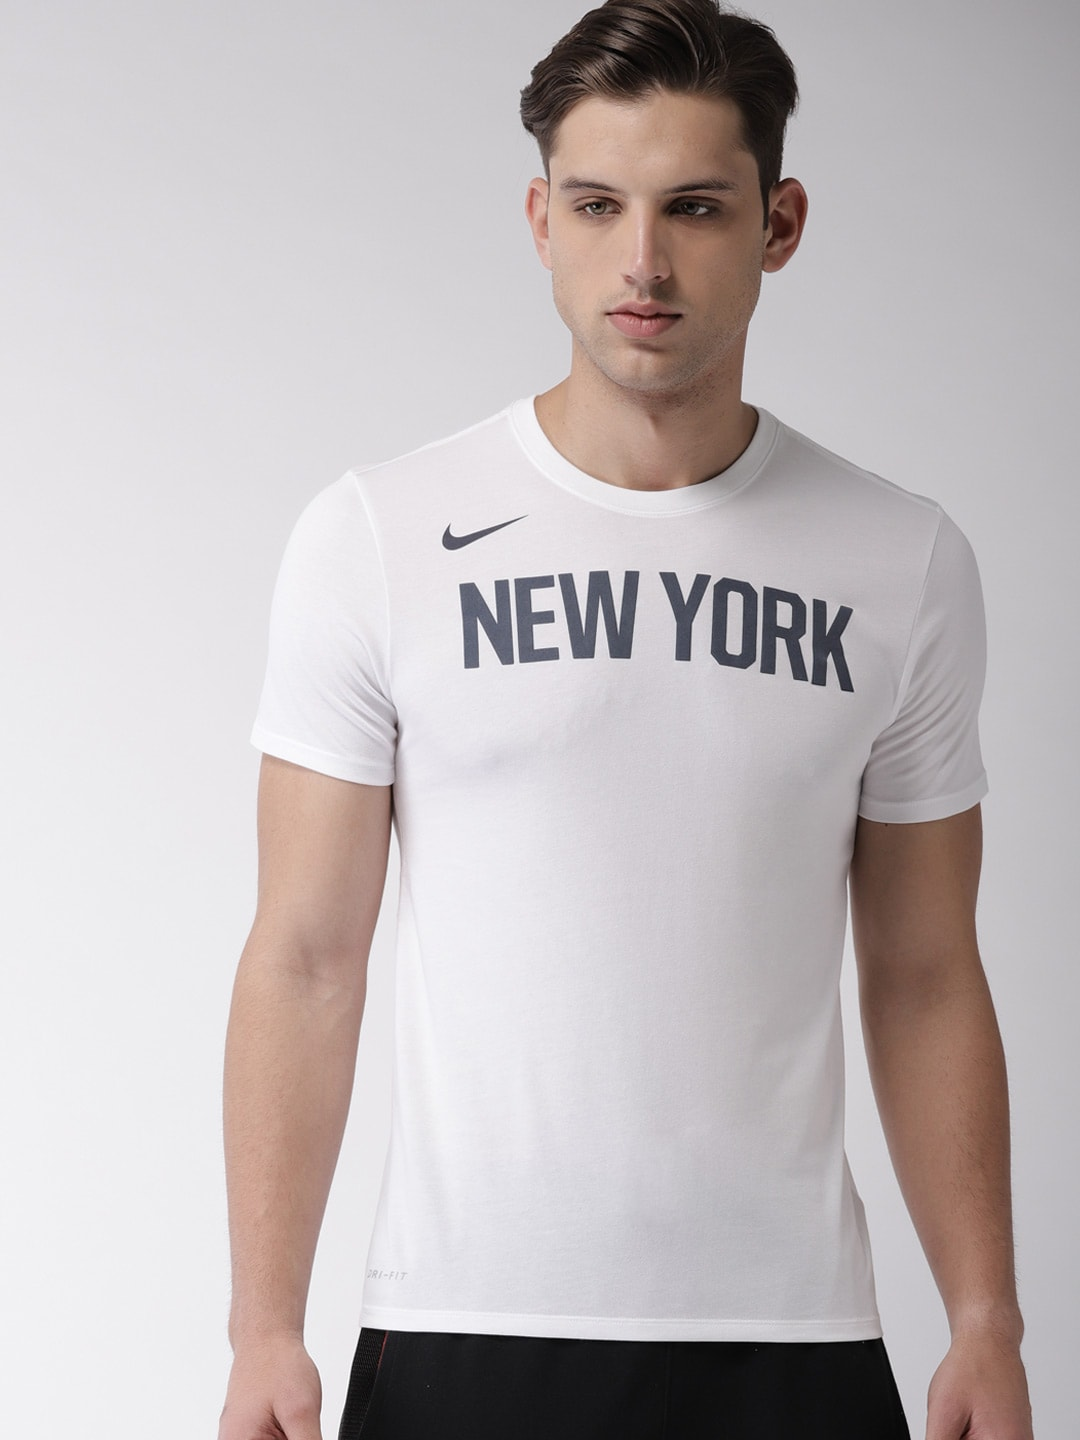 931146ffb740 Nike All Tshirt - Buy Nike All Tshirt online in India